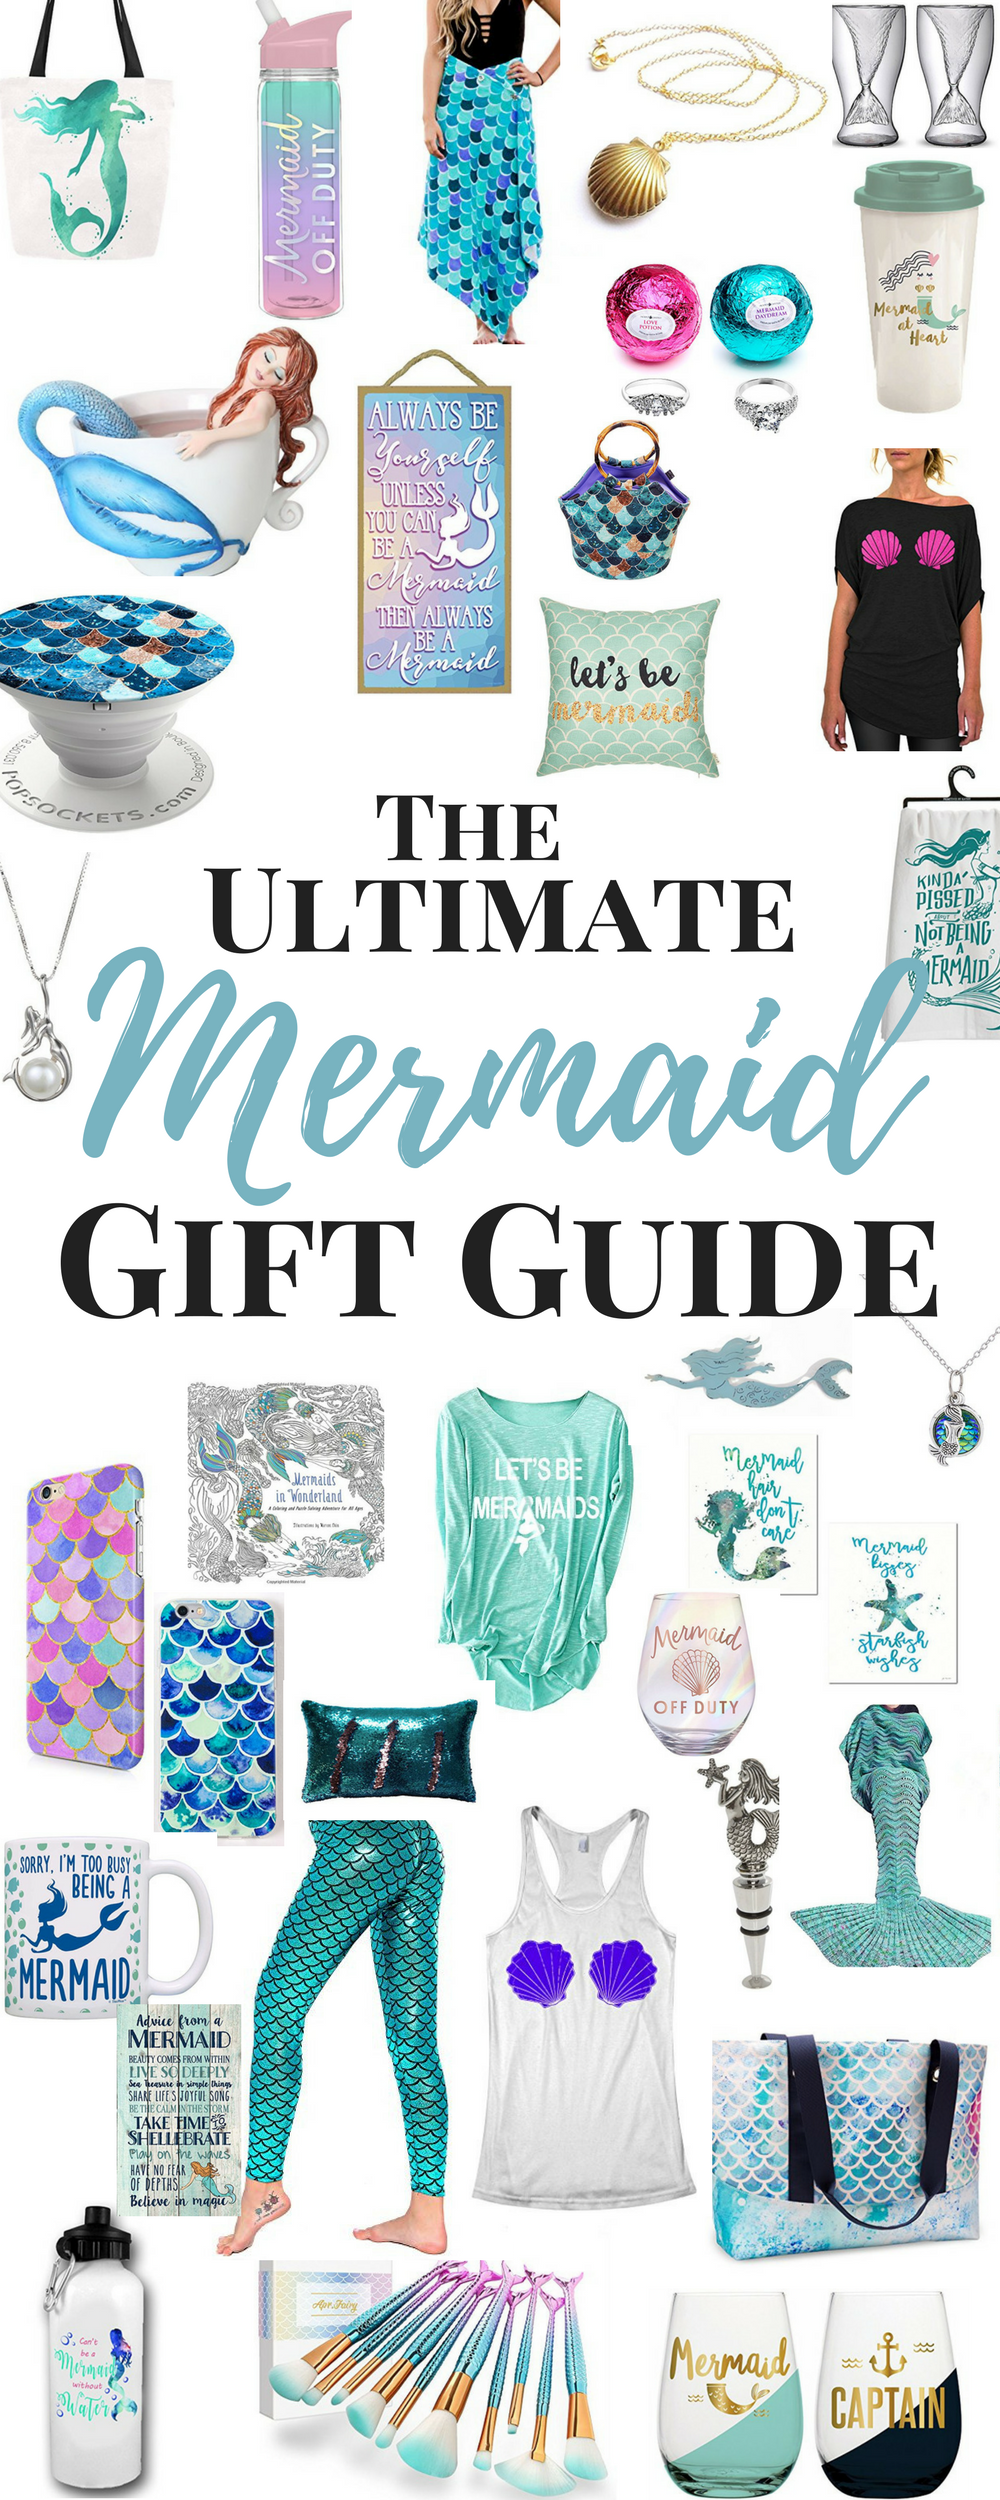 The Ultimate Mermaid Gift   Guide